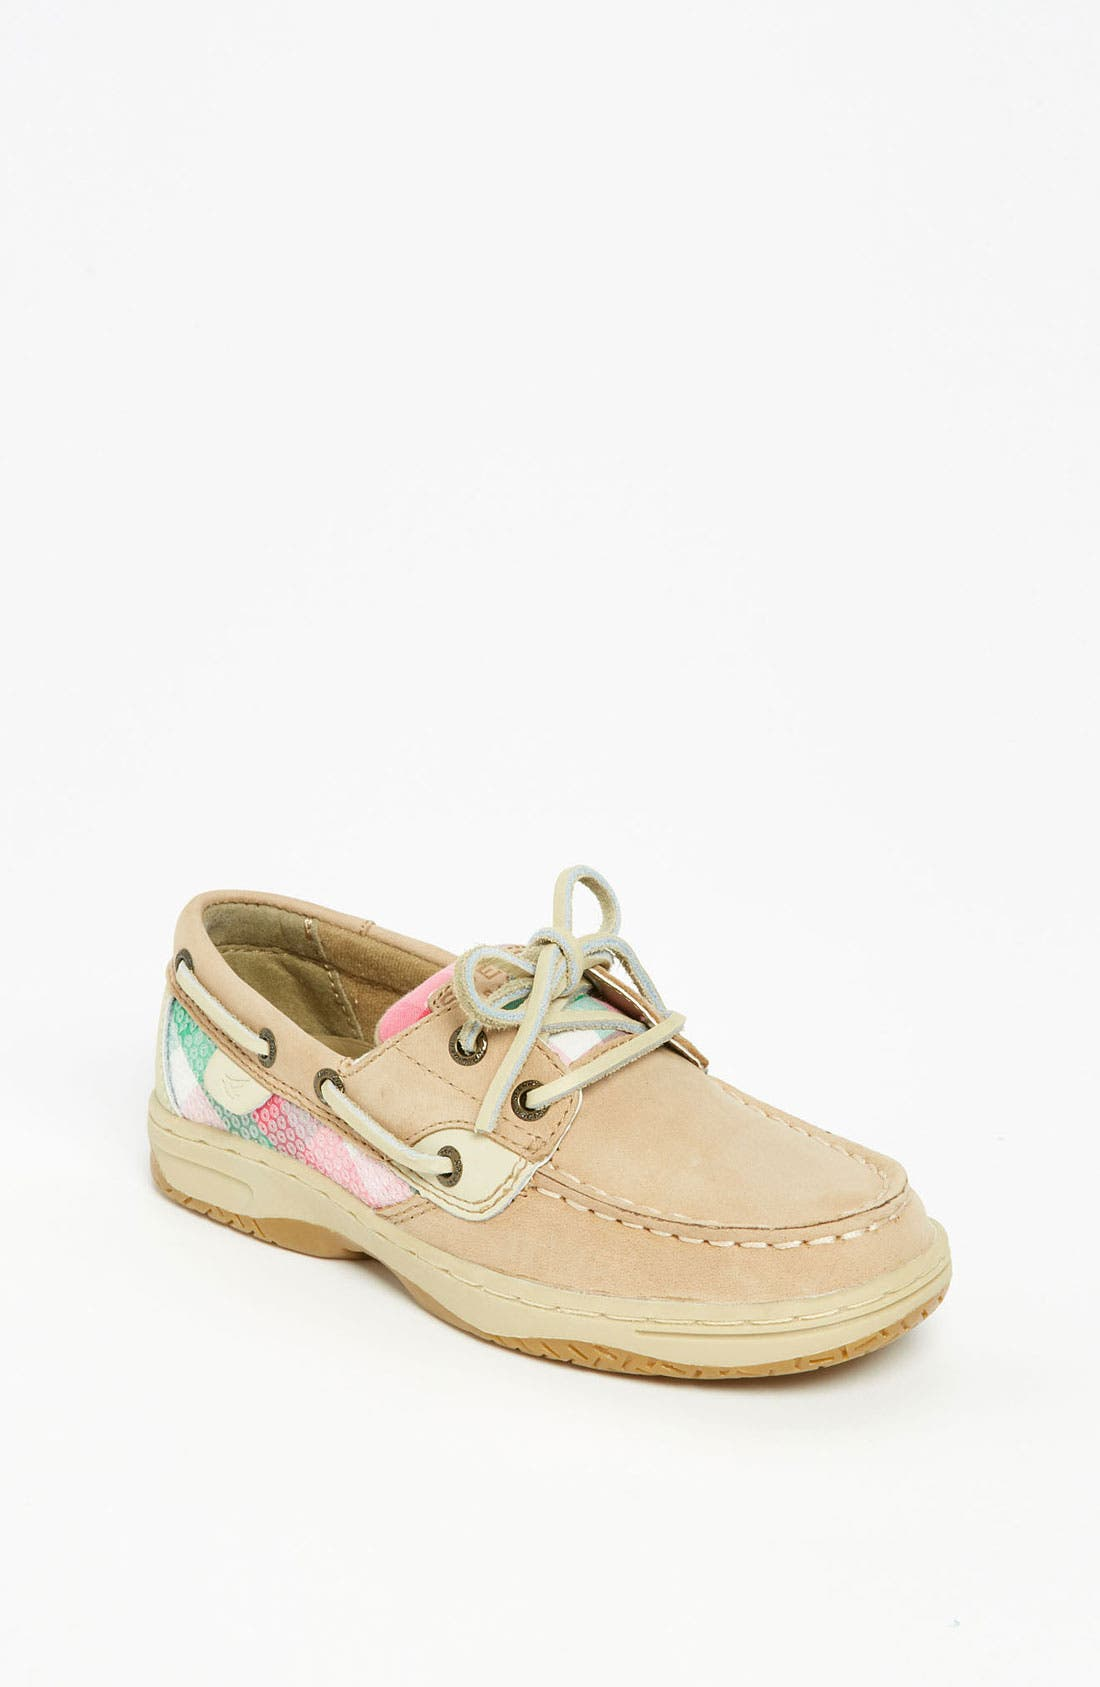 Sperry Top-Sider<sup>®</sup> 'Bluefish' Boat Shoe,                             Main thumbnail 1, color,